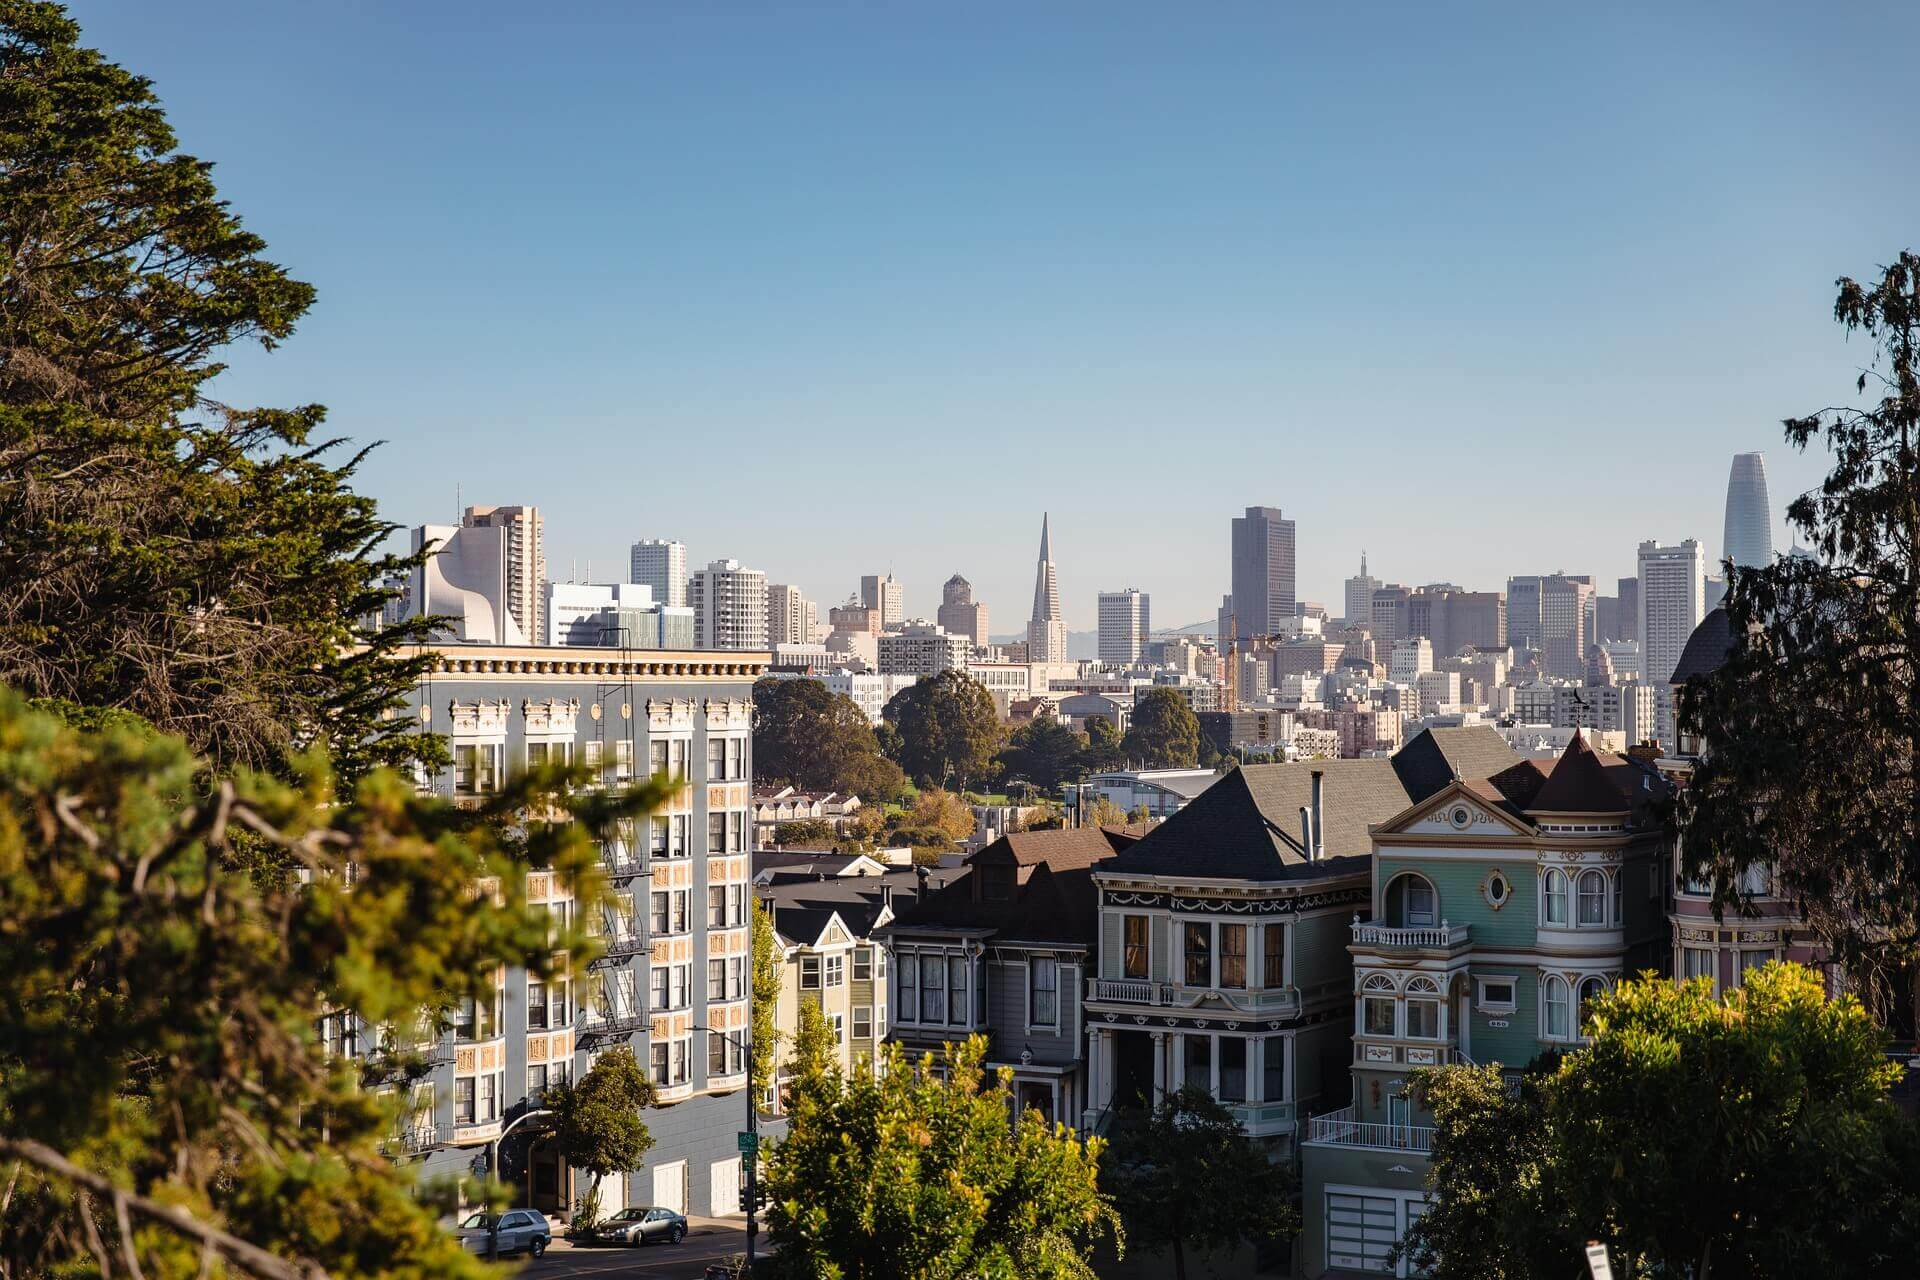 What Should I Not Miss In San Francisco?